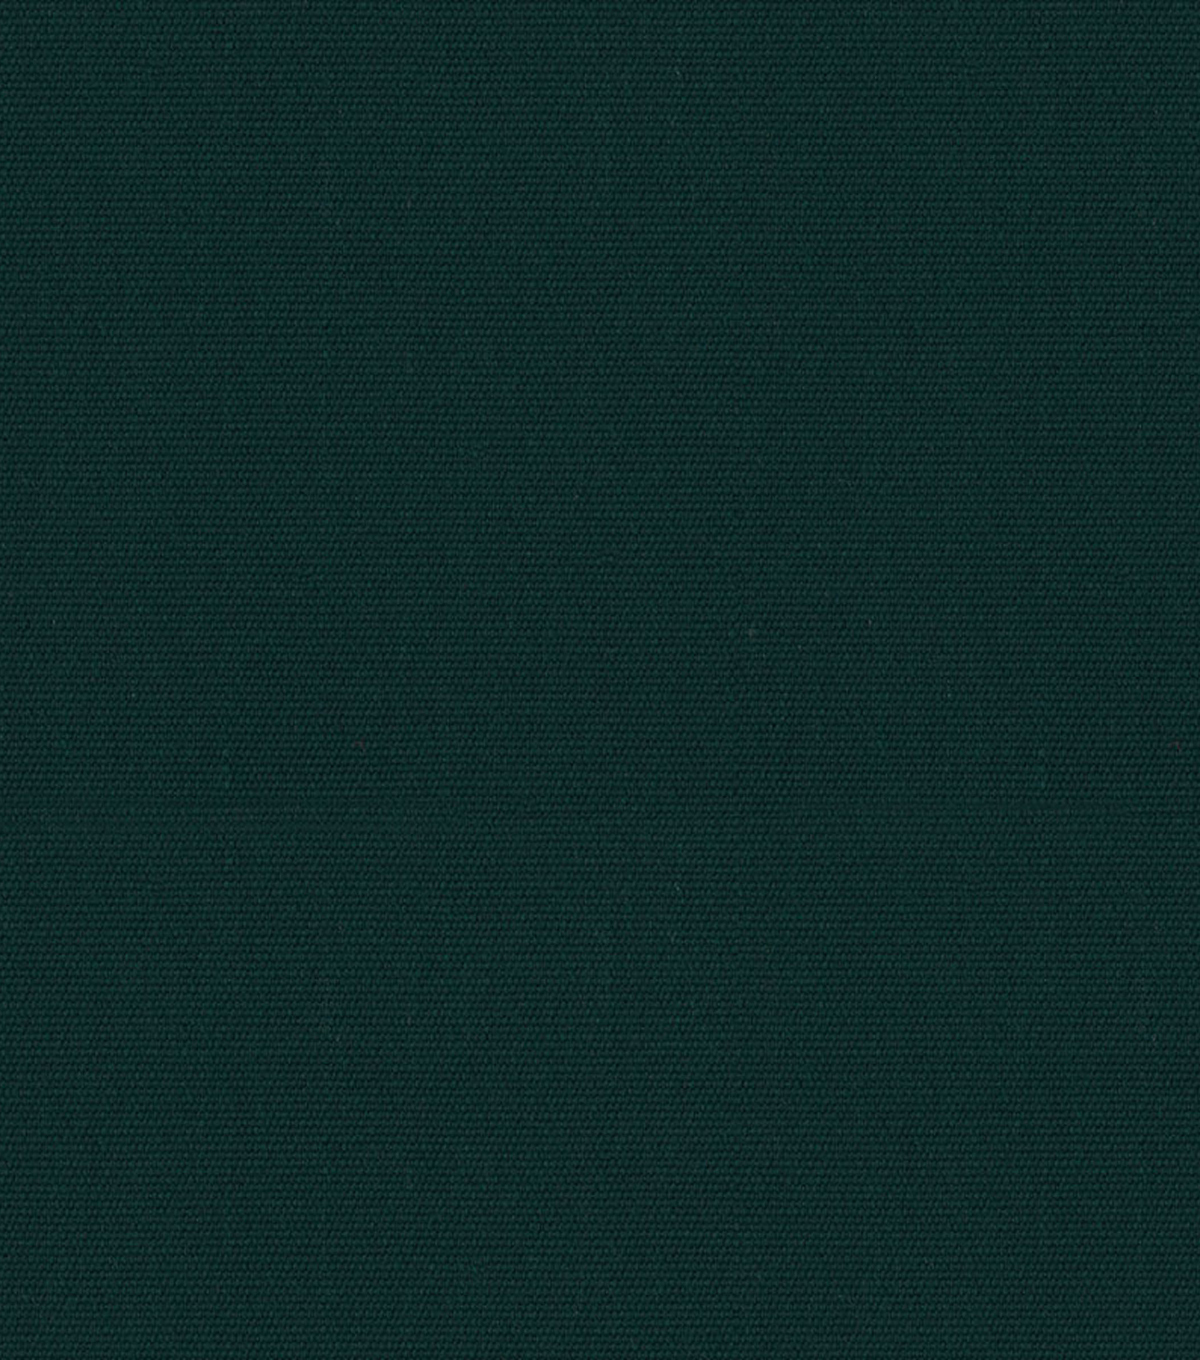 Sunbr Plus 60 8437 Forest Green Swatch